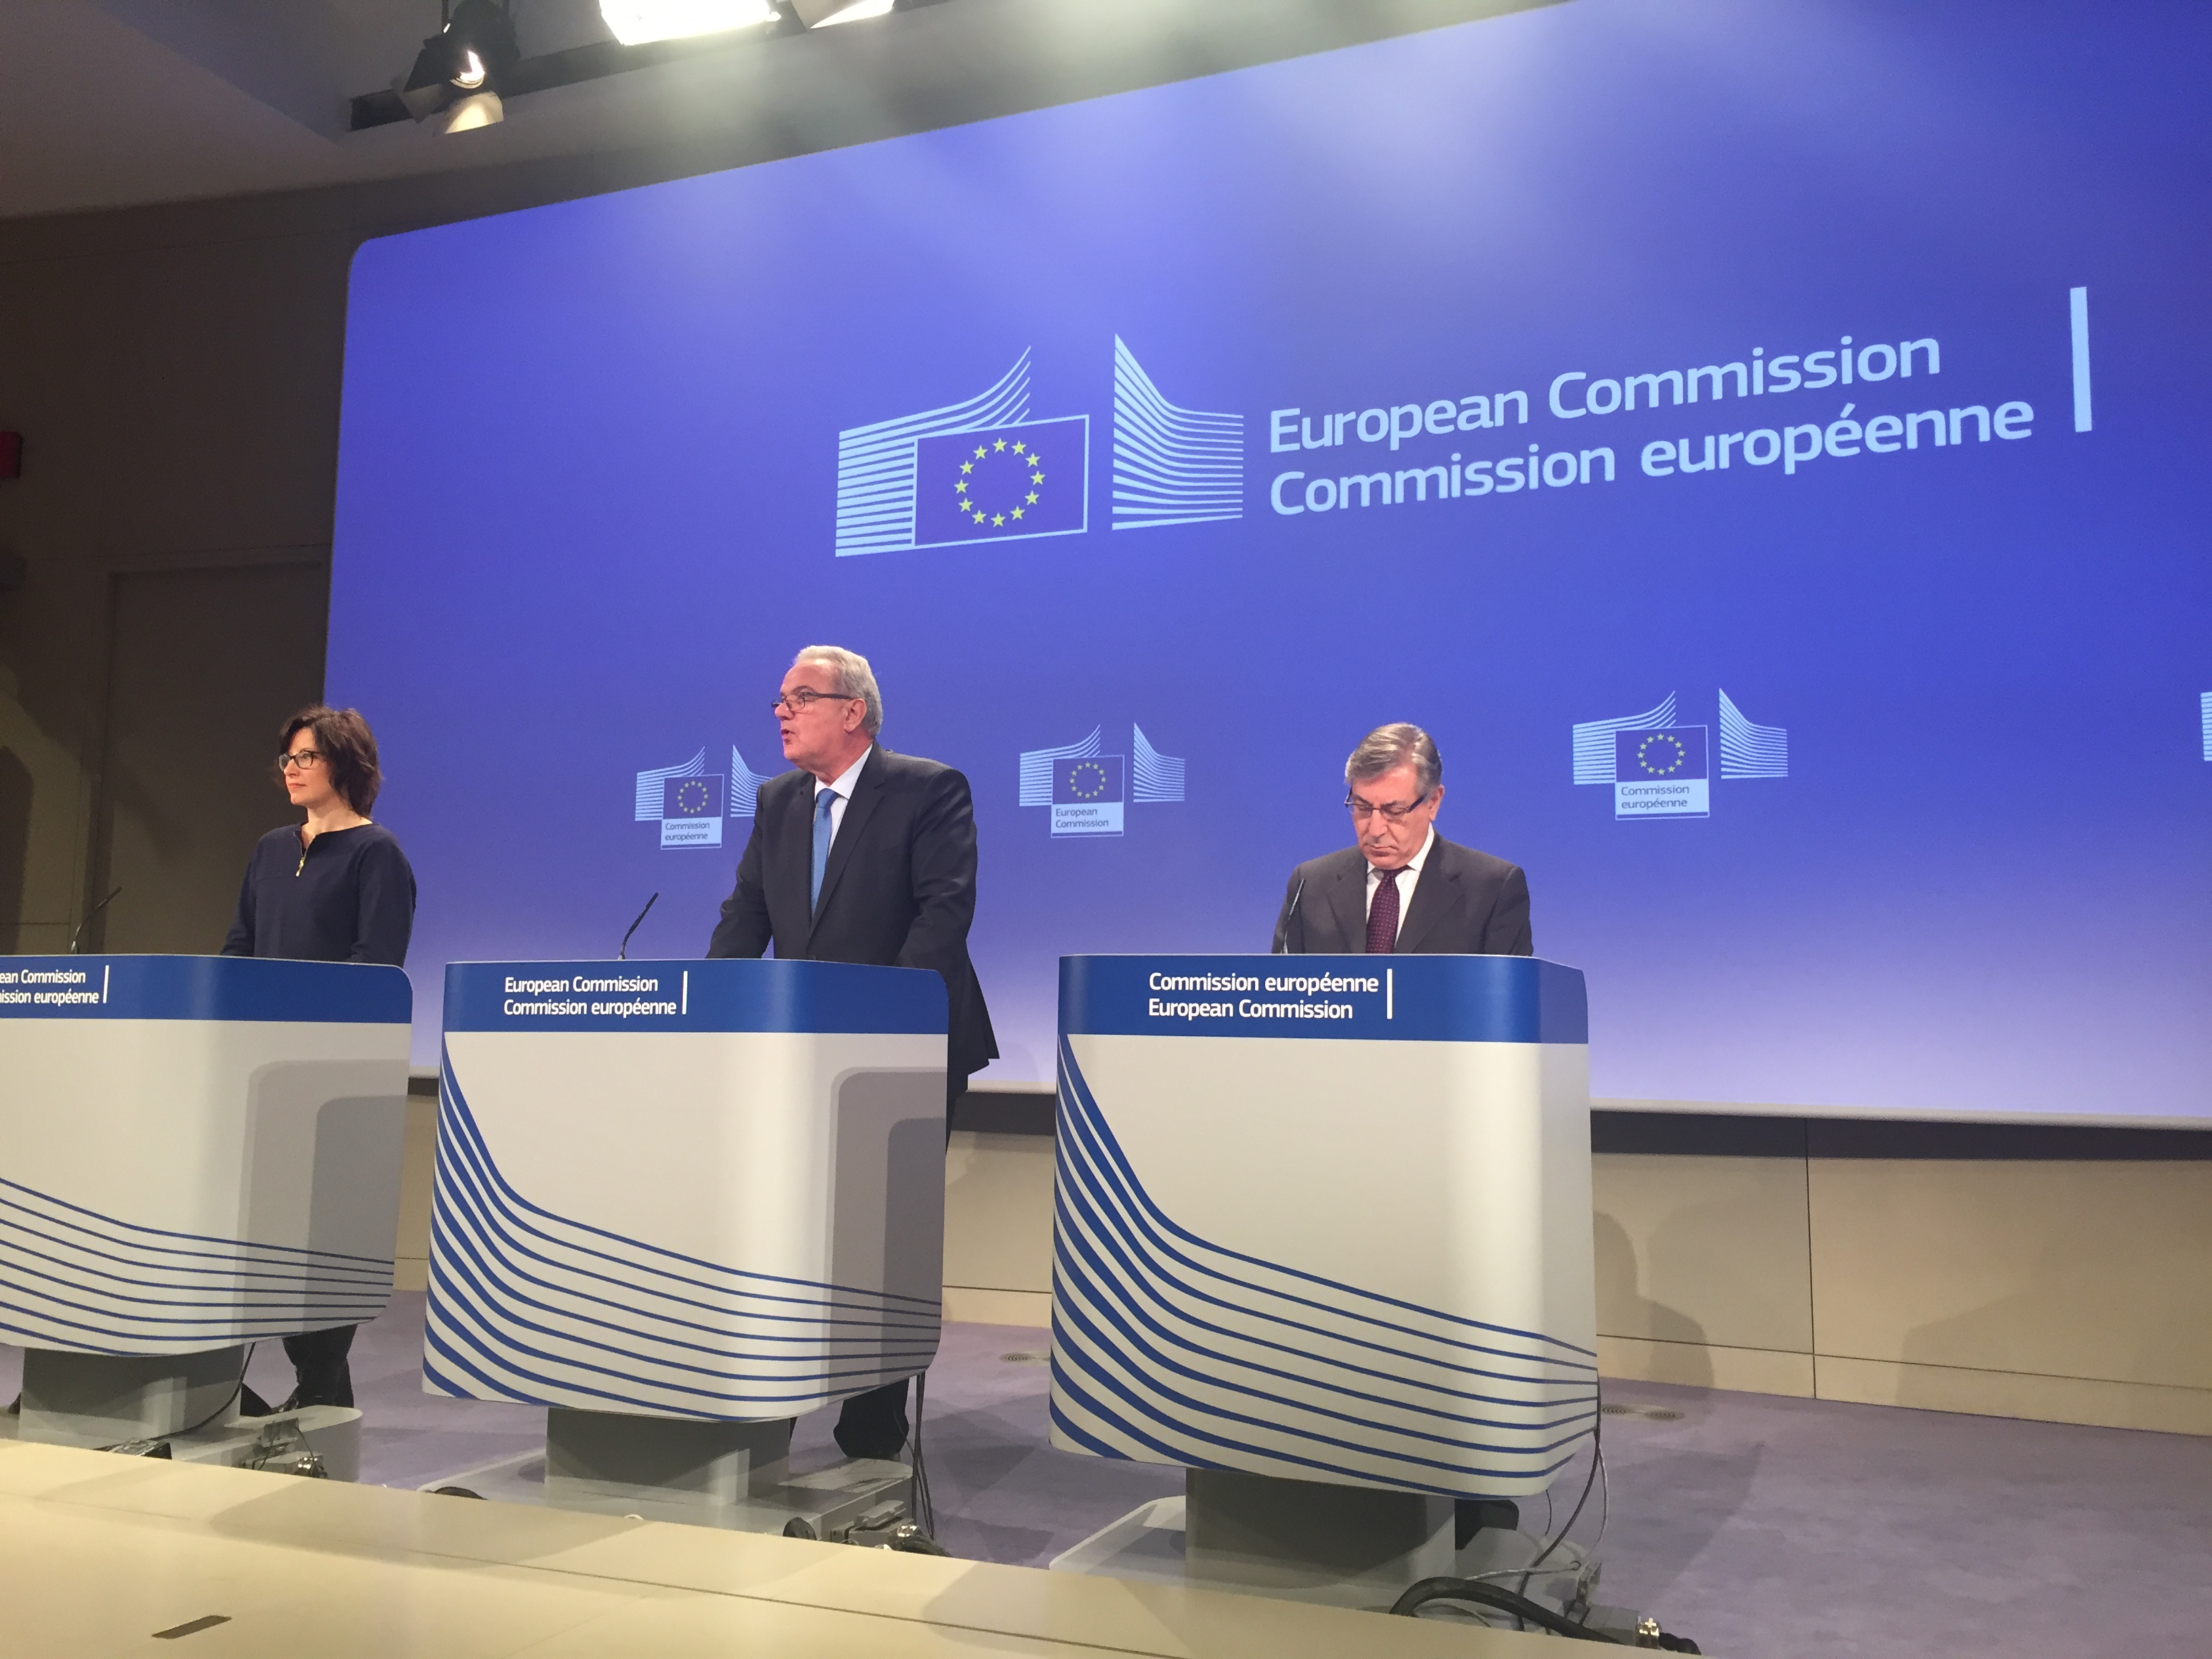 Commissioners Neven Mimica and Karmenu Vella.